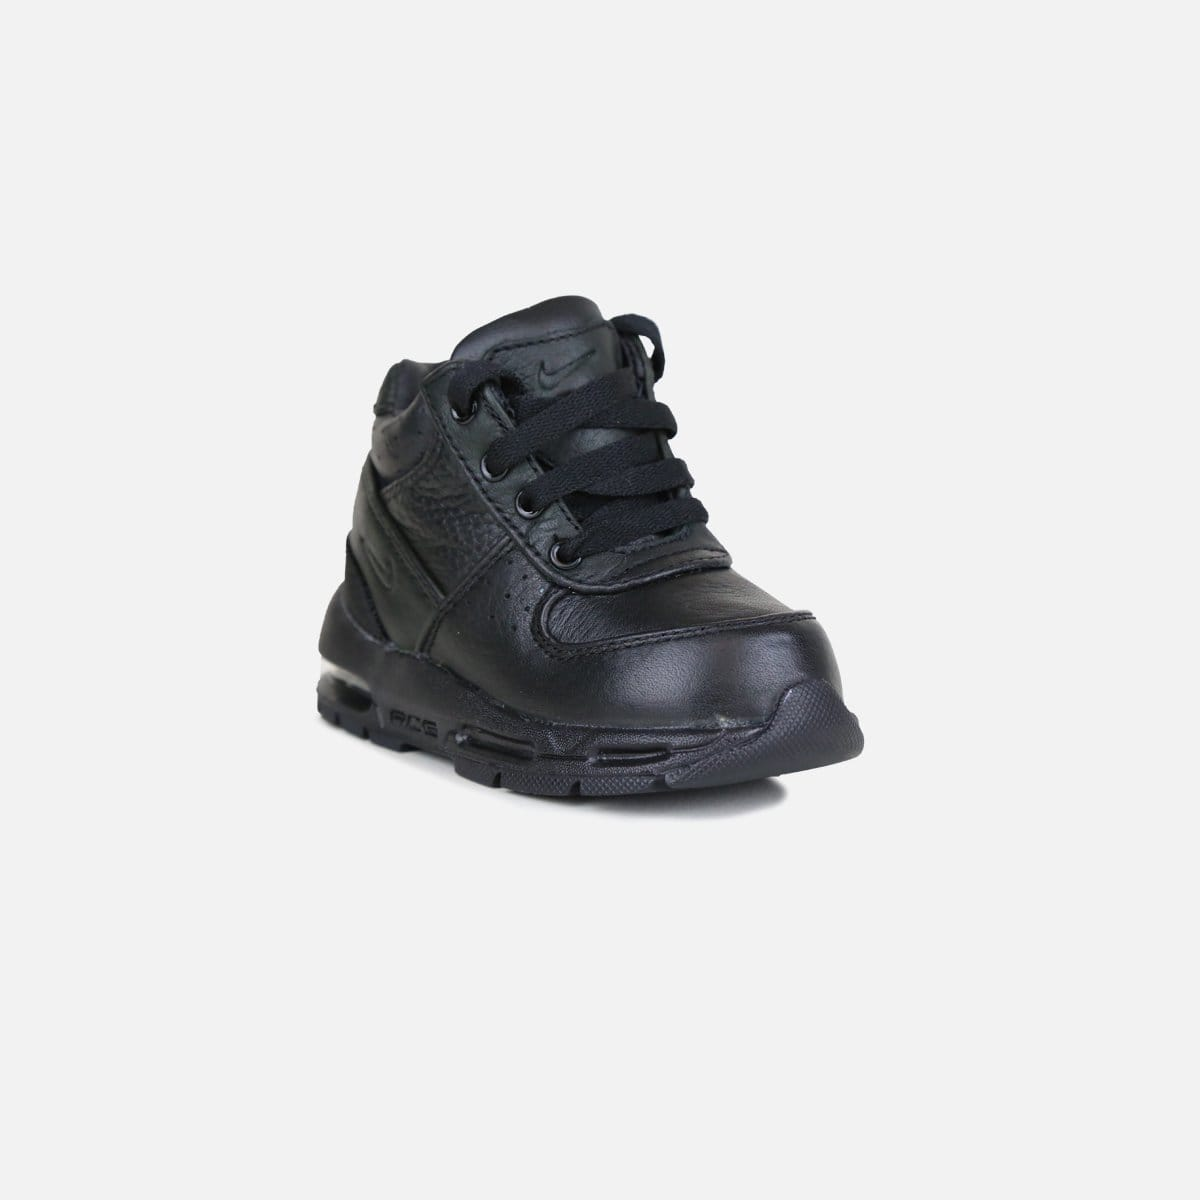 Nike Air Max Goadome Toddler Boot (Black/Black)